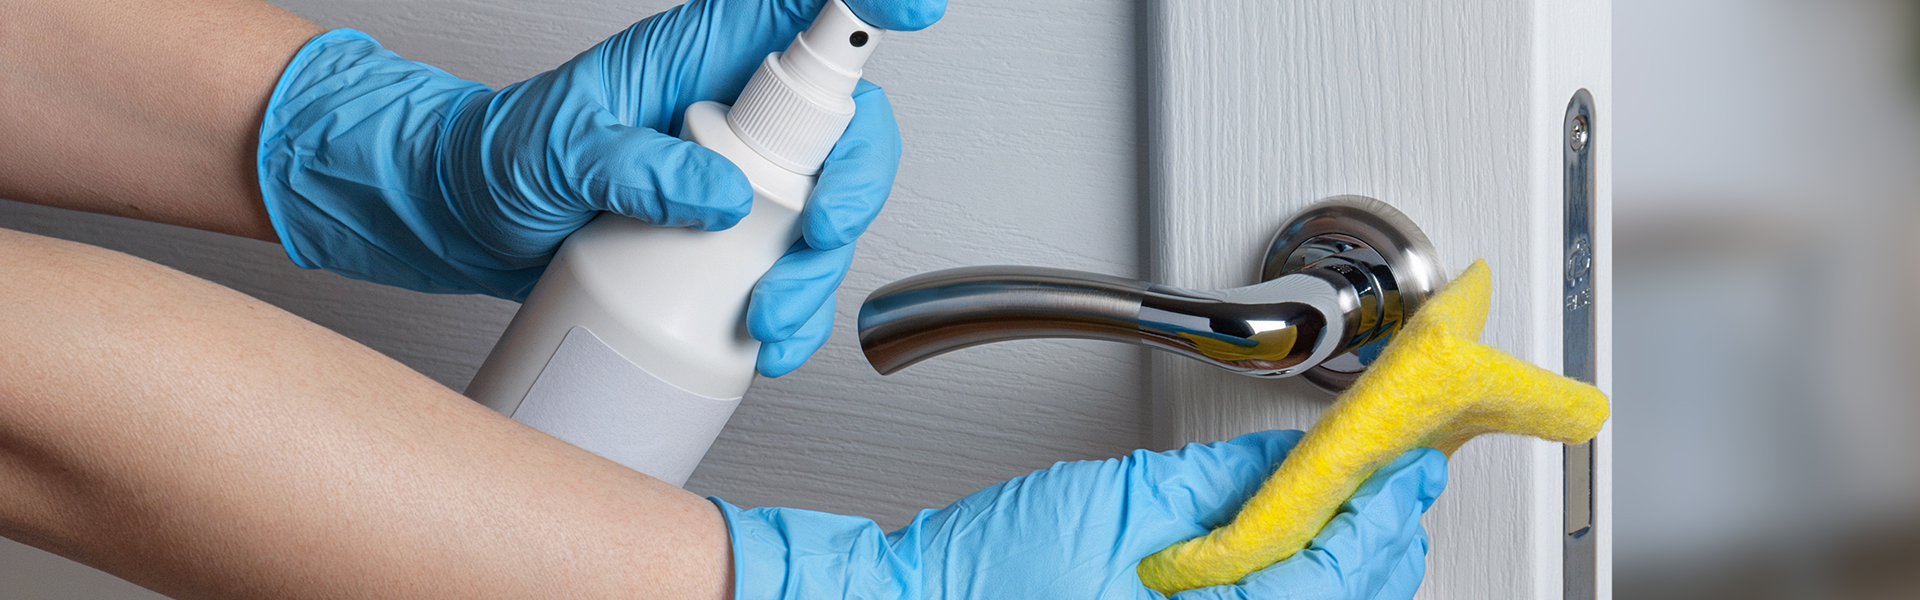 A person cleaning a door handle with a spray bottle and microfibre cloth.